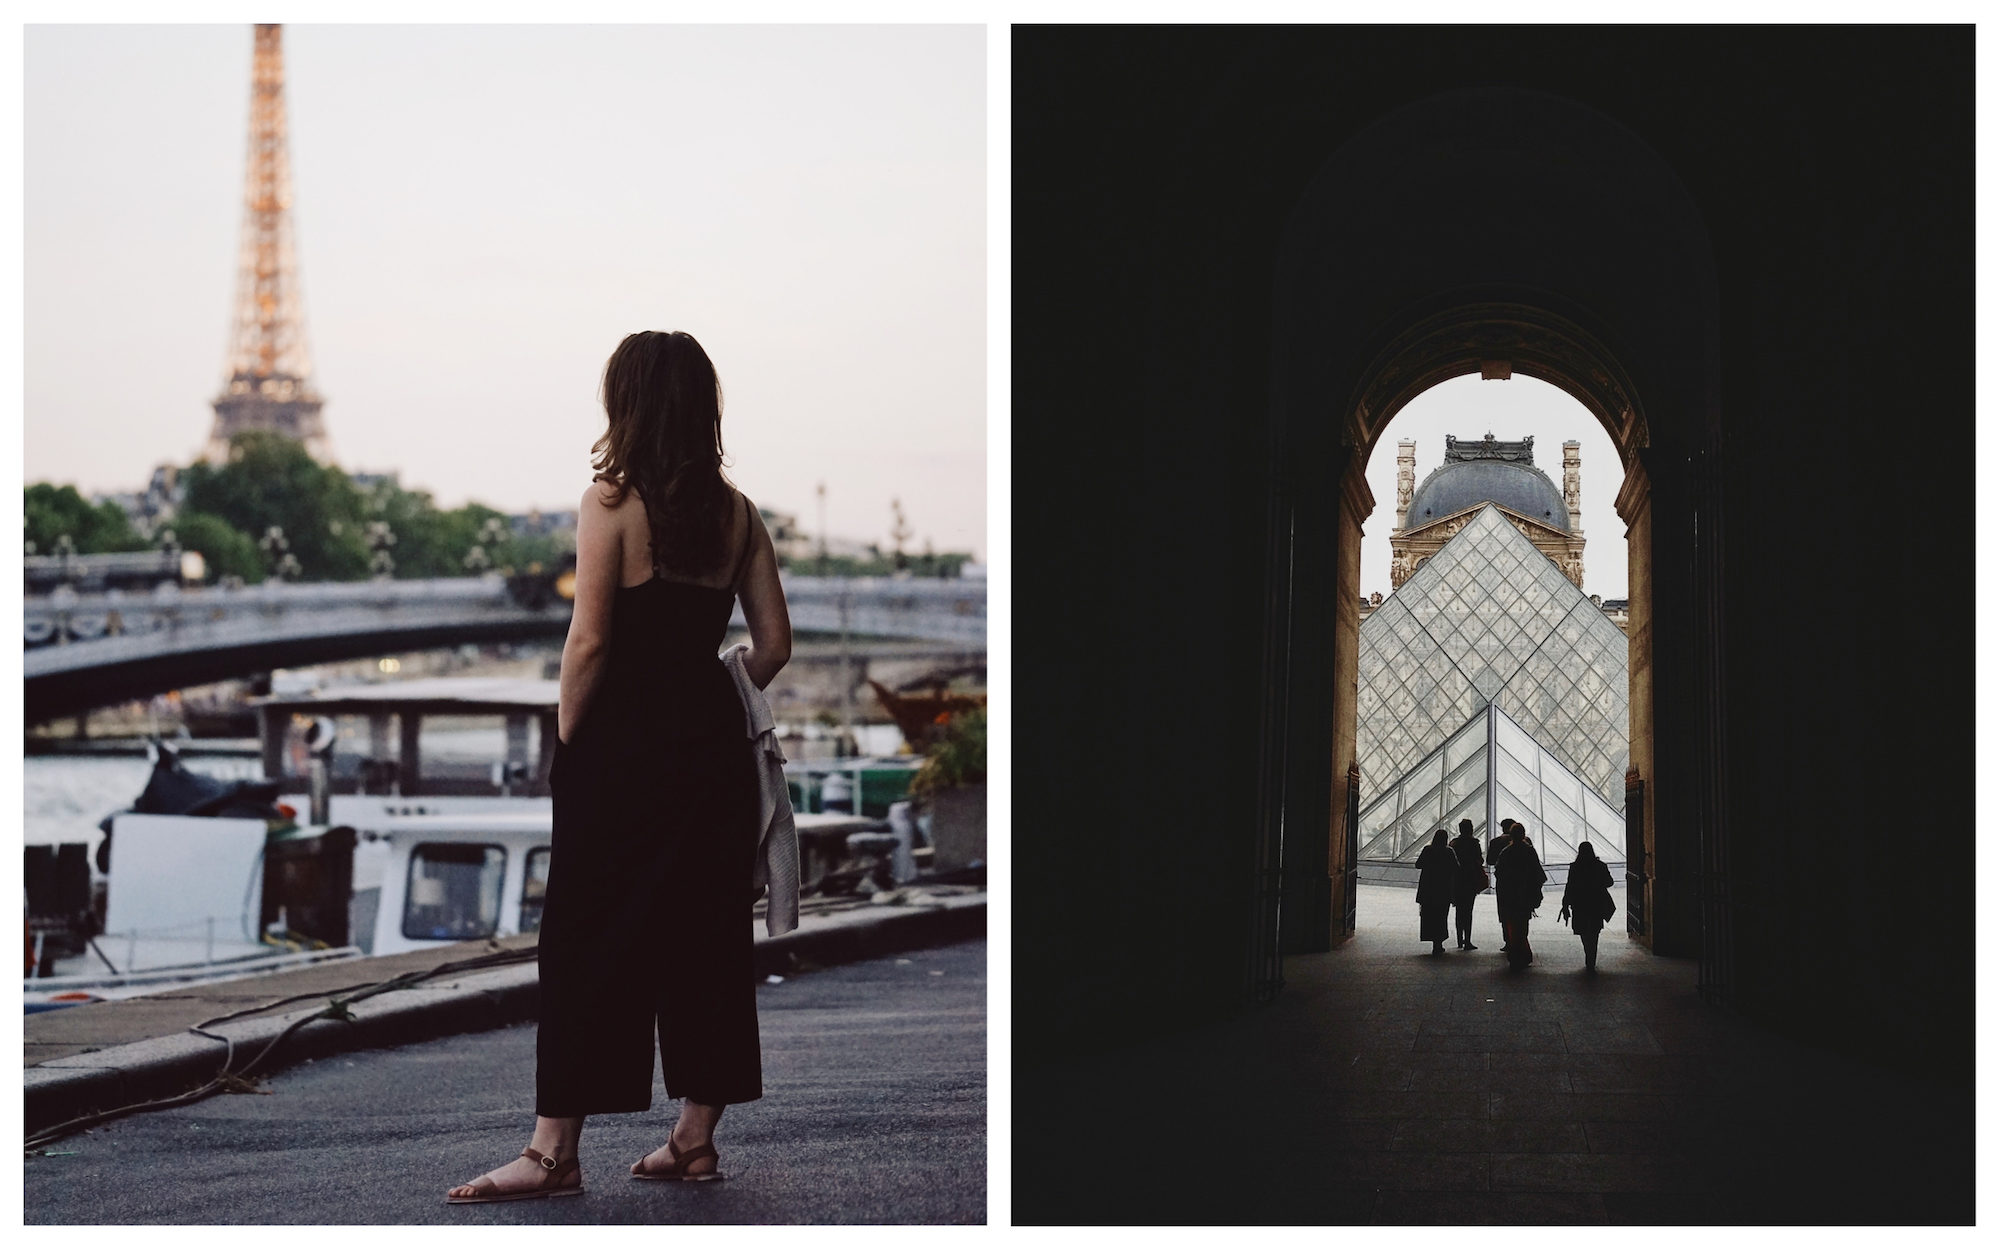 HiP Paris Blog explores seeing Paris like it's the first time, like this woman standing on the banks of the River Seine looking at the Eiffel Tower (left). The arched doorway leading to the Louvre's glass pyramid (right).